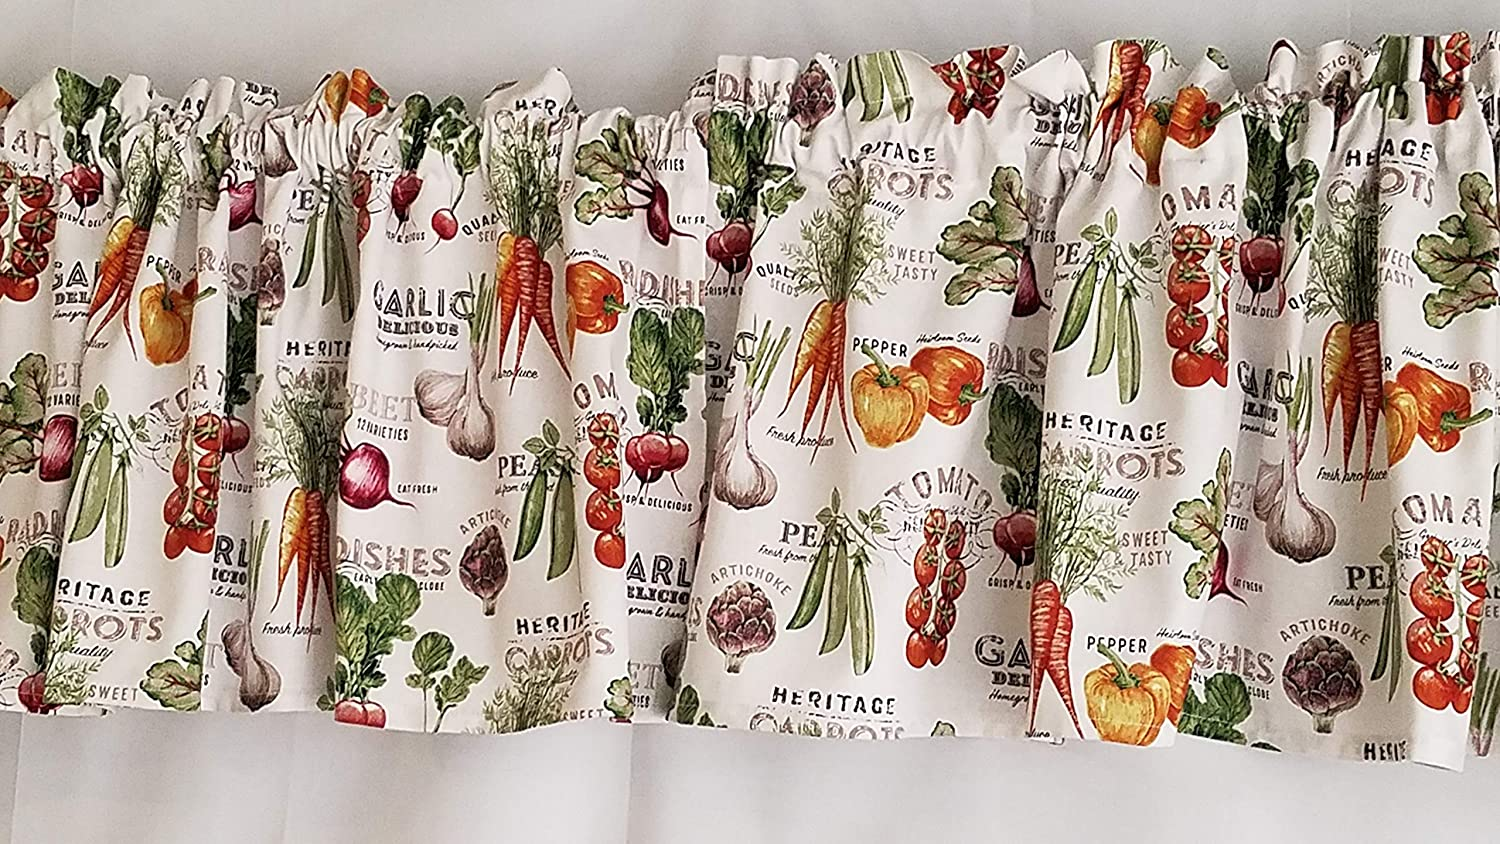 Vegetable Kitchen Curtain Farm Fresh Kitchen Curtain Farm Themed Kitchen Curtain Tomatoes Carrots Bell Peppers Kitchen Curtain White Kitchen Curtain 42 43 Inches Wide X 15 Inches Long Handmade